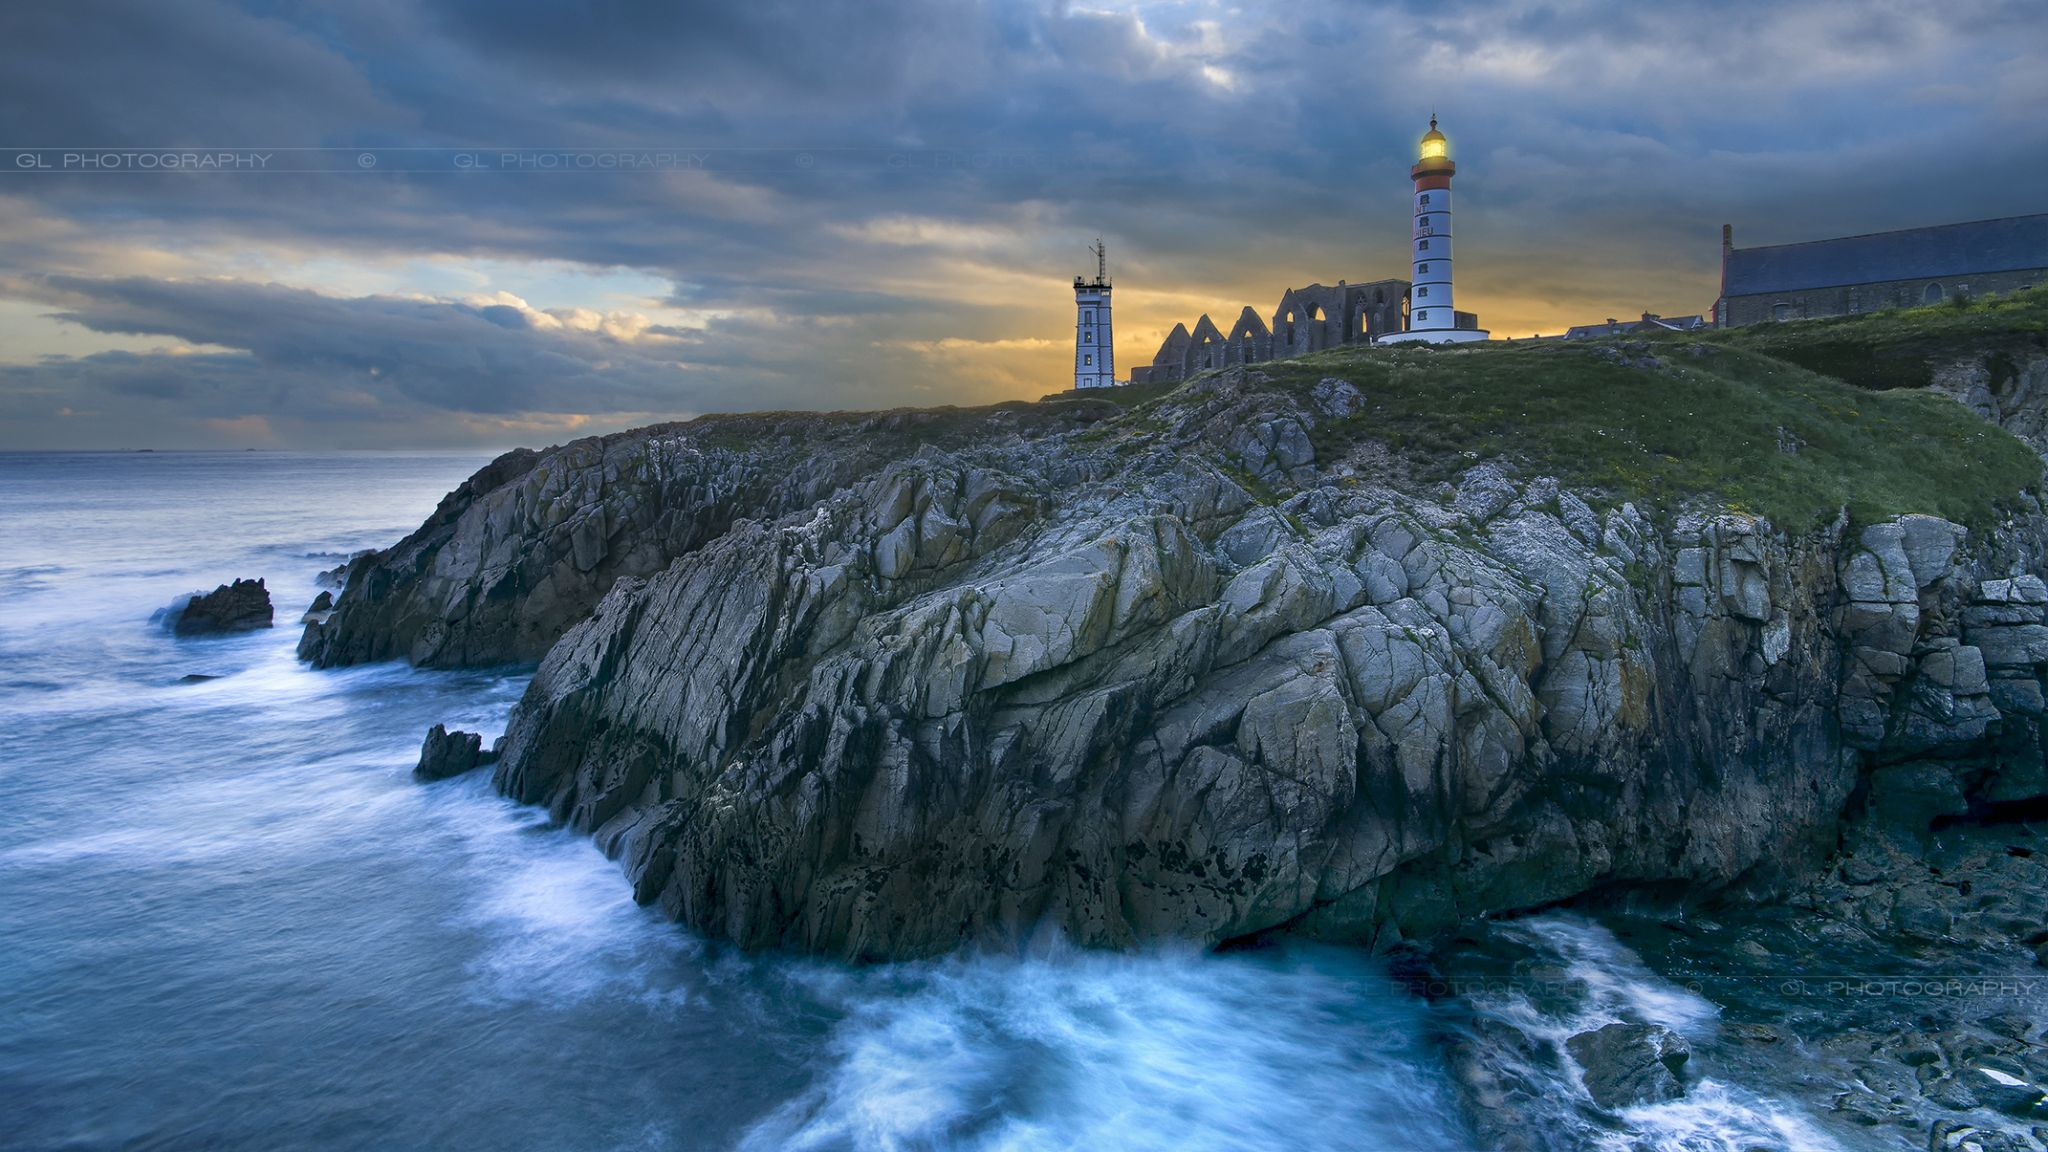 Pointe saint mathieu, France